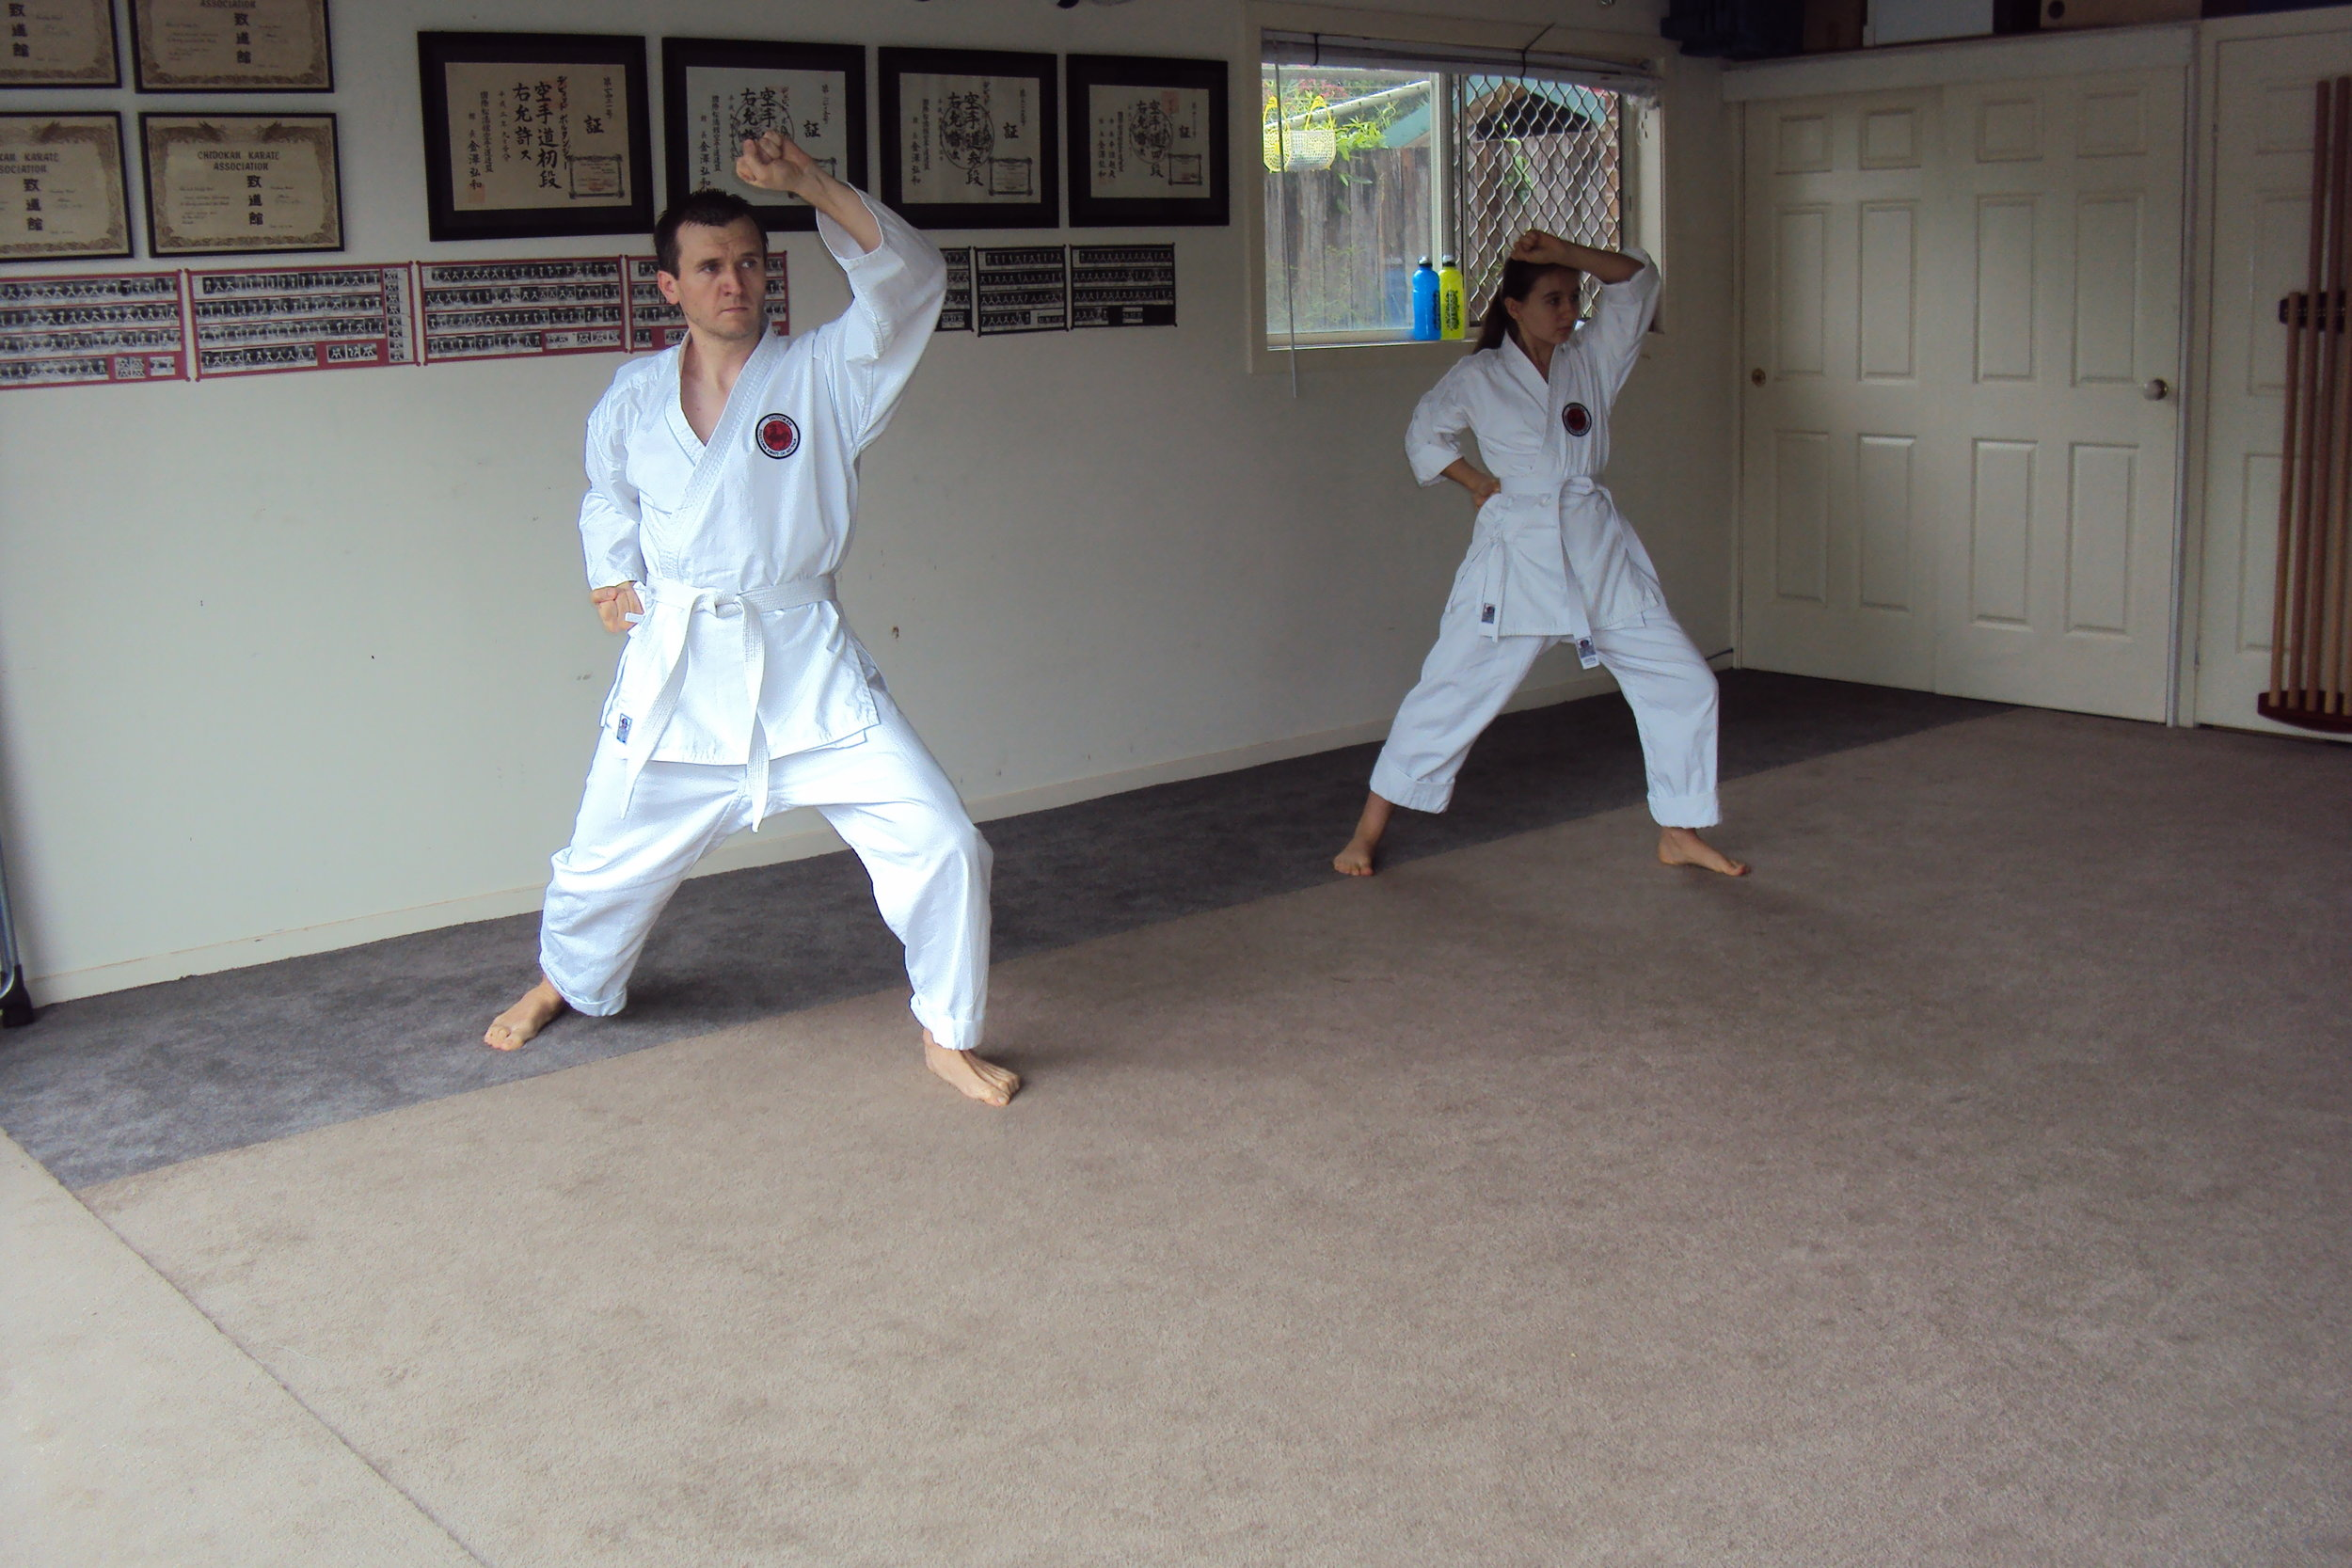 Basics & Kata - Students learn only the best basics and kata from experienced and professional instructors.